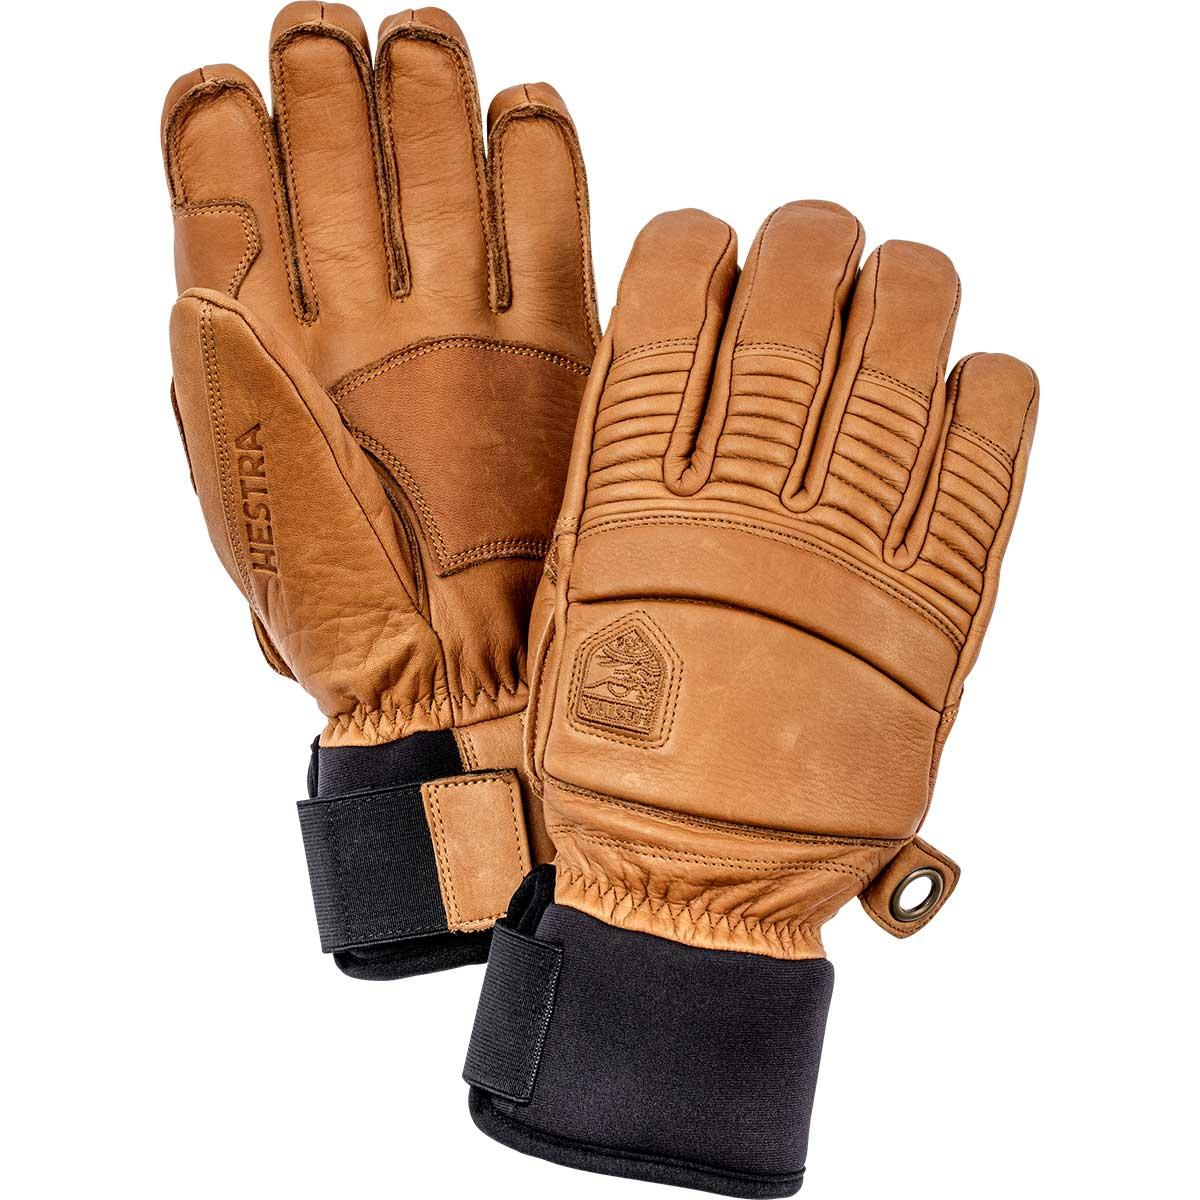 Hestra Leather Fall Line Gloves in cork